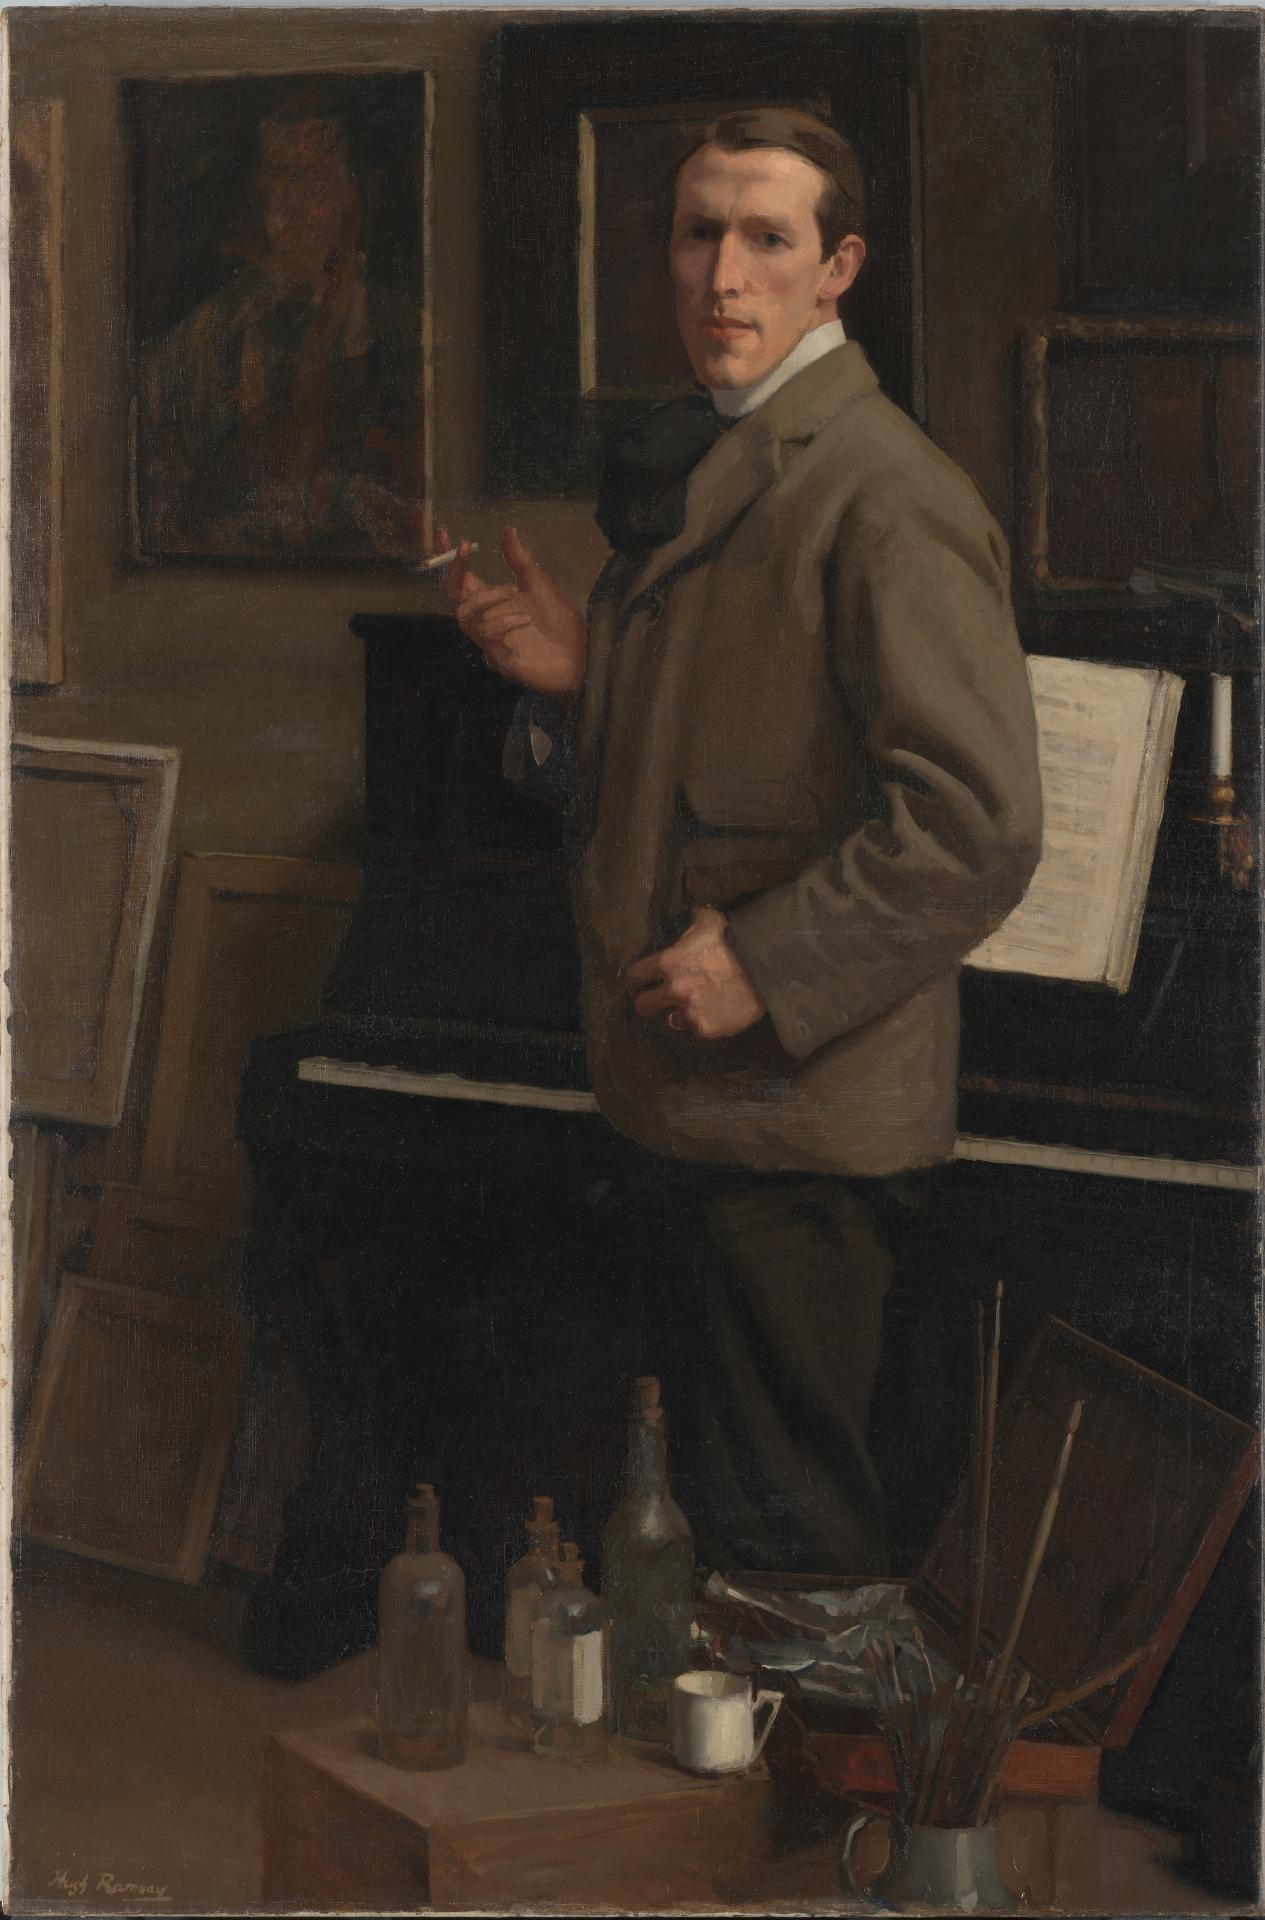 Self portrait (smoking in front of piano)